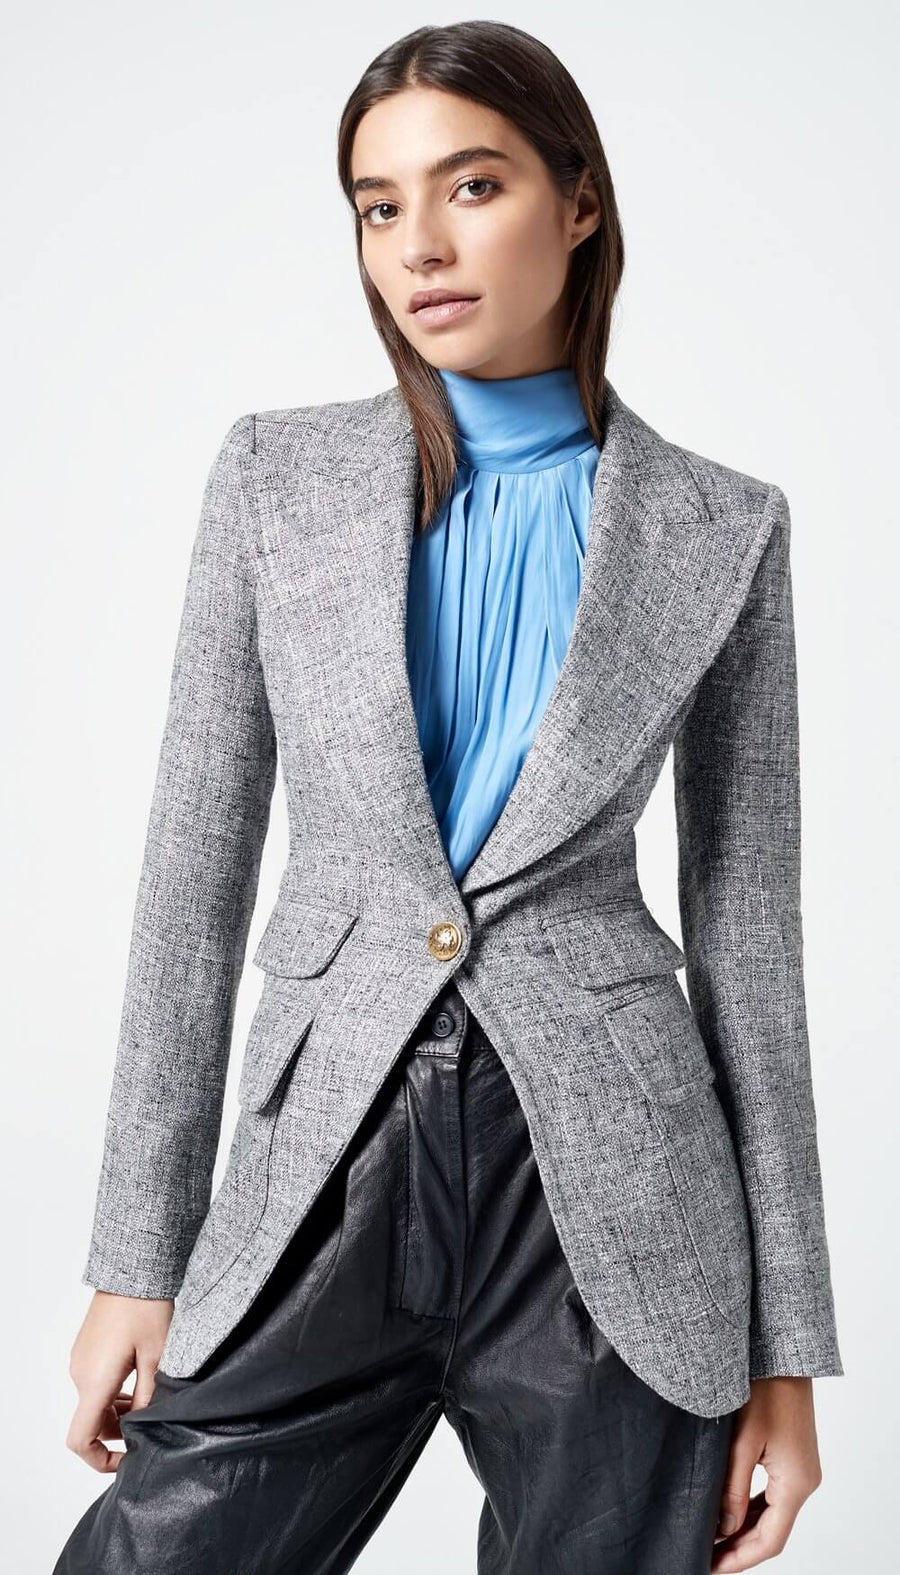 Smythe Birkin Blazer in Peppersalt from The New Trend